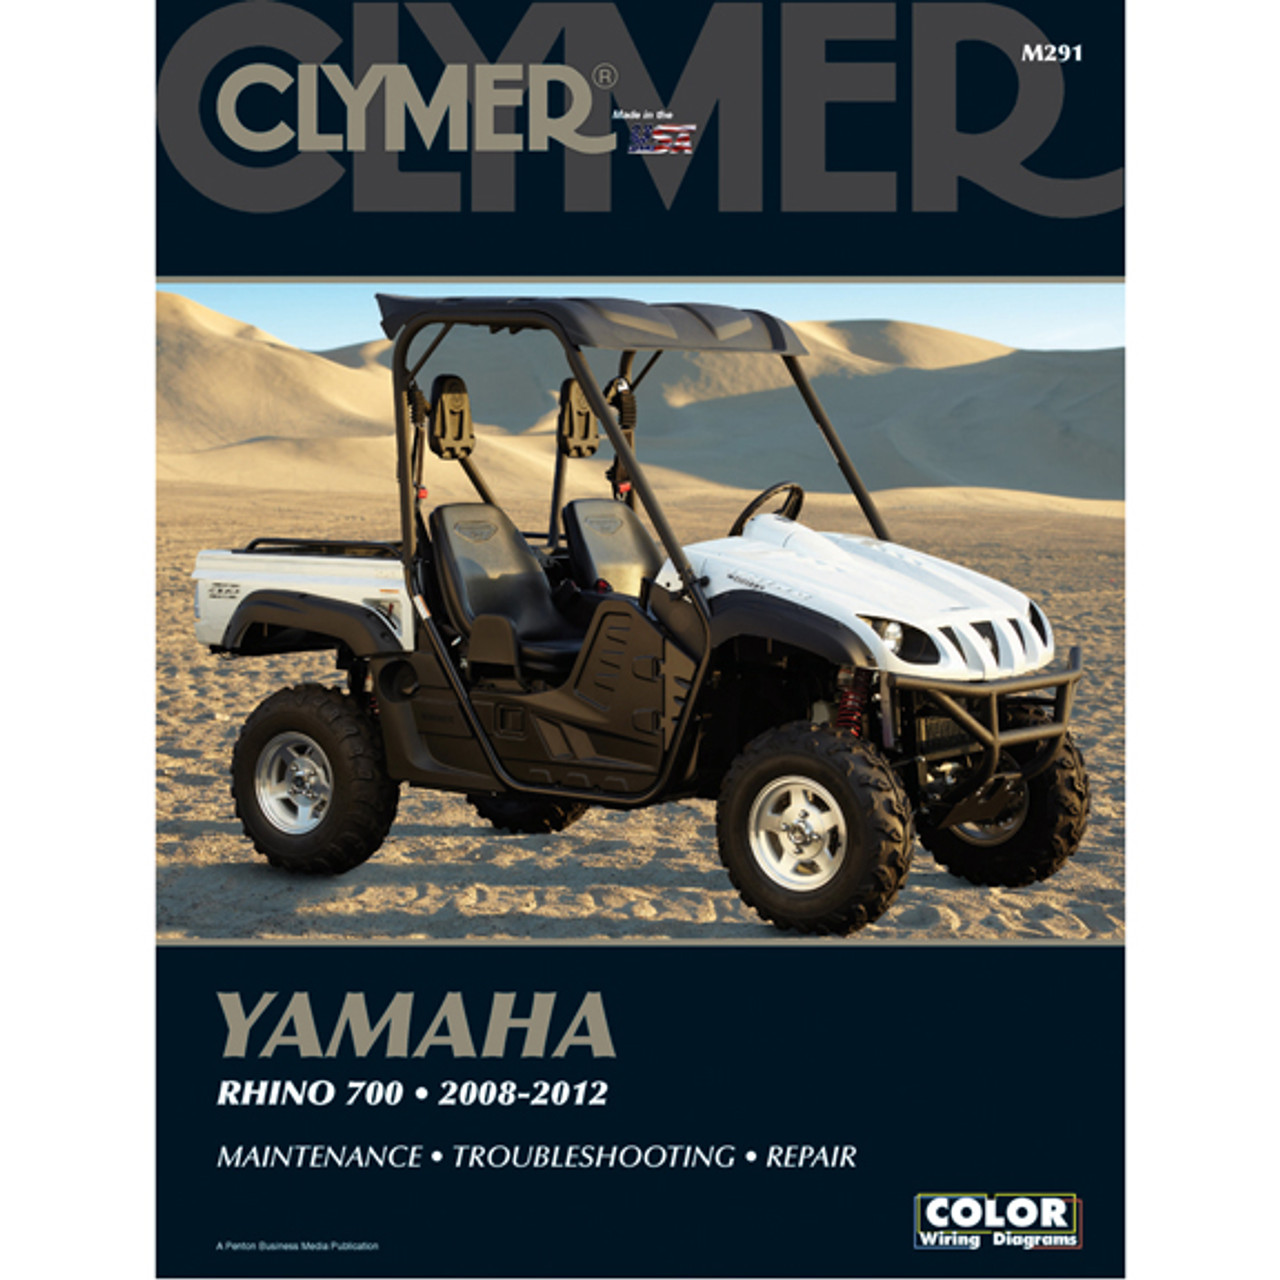 2008 yamaha grizzly 700 shop manual 1 manuals and user guides site u2022 rh urbanmanualguide today 2007 yamaha grizzly 700 fi service manual yamaha grizzly 700 fi service manual